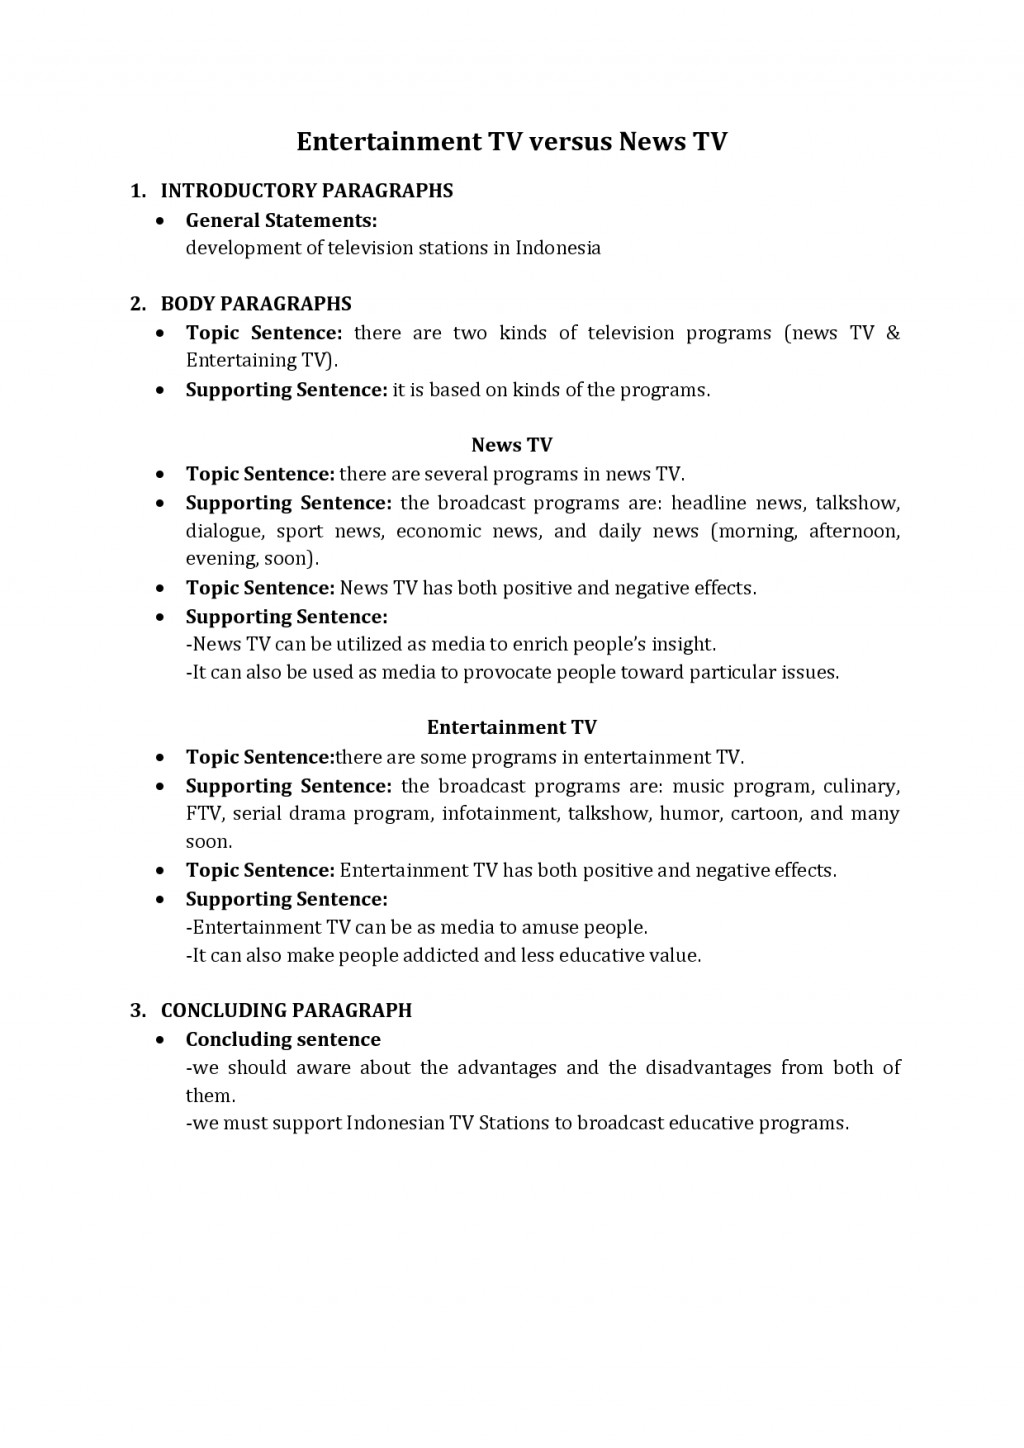 004 Essay Example How To Write College Format Breathtaking A Application Scholarship Large